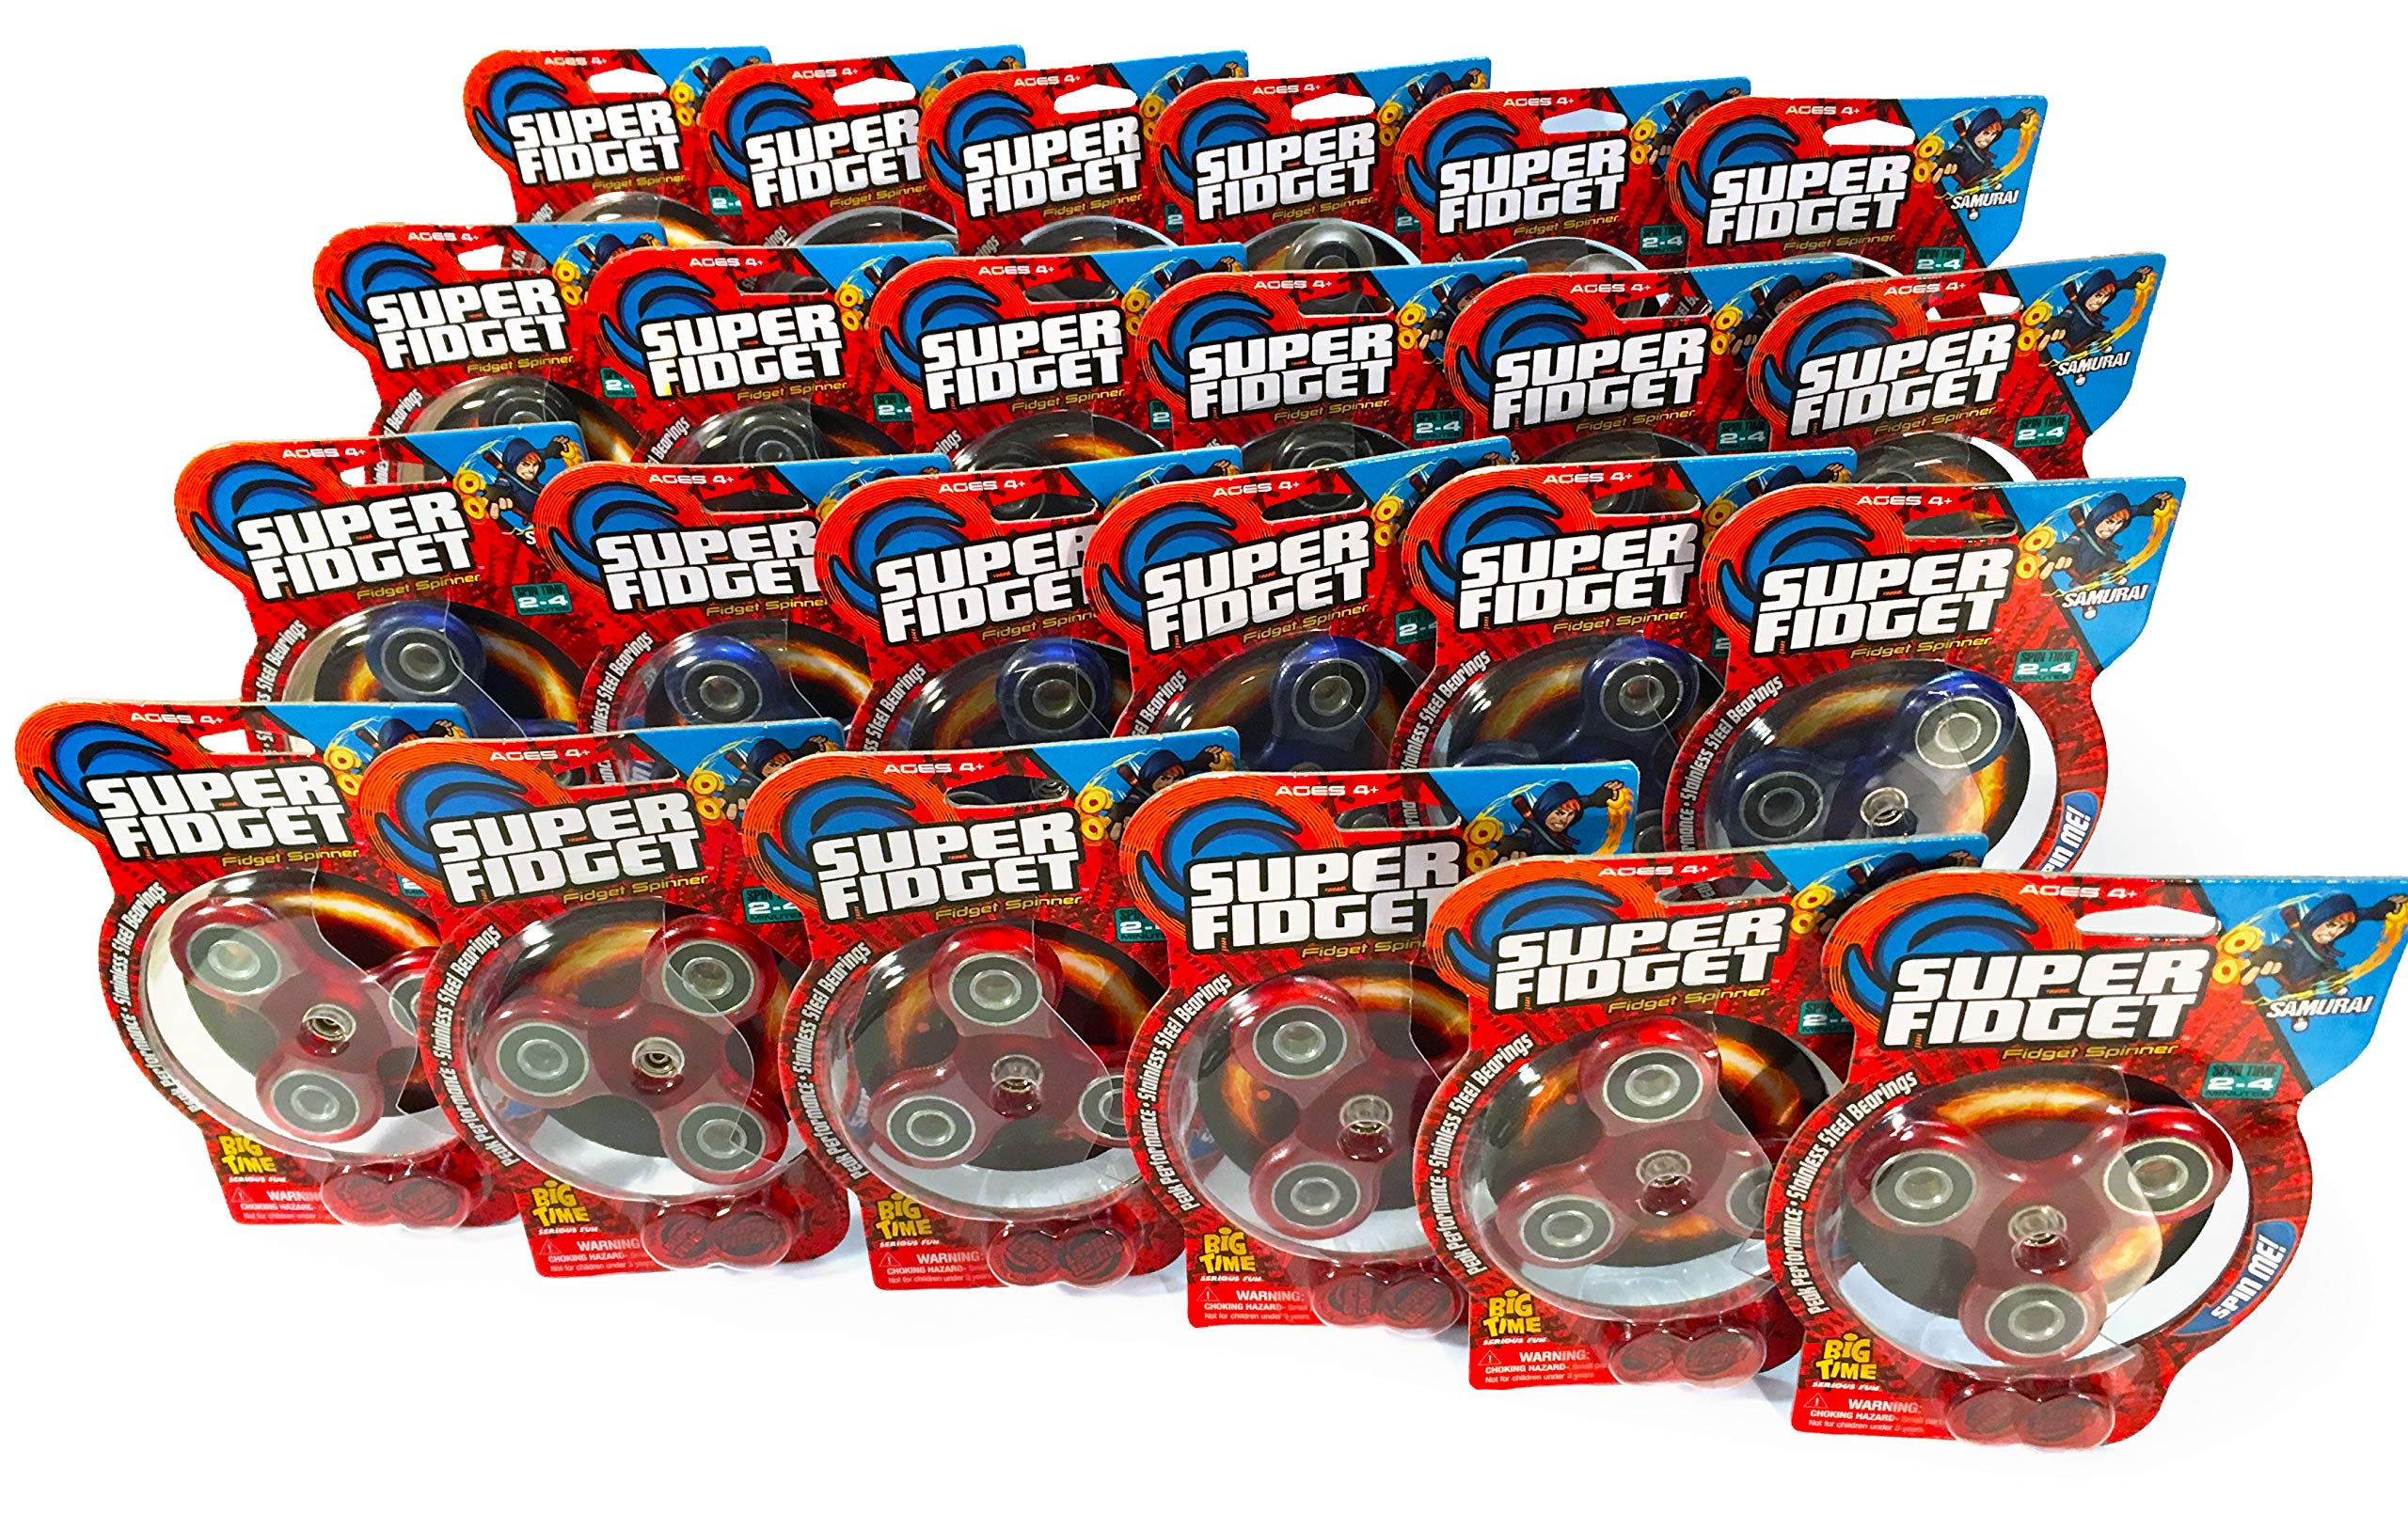 Super Fidget Samurai Fidget Spinner (24 pack) by Big Time